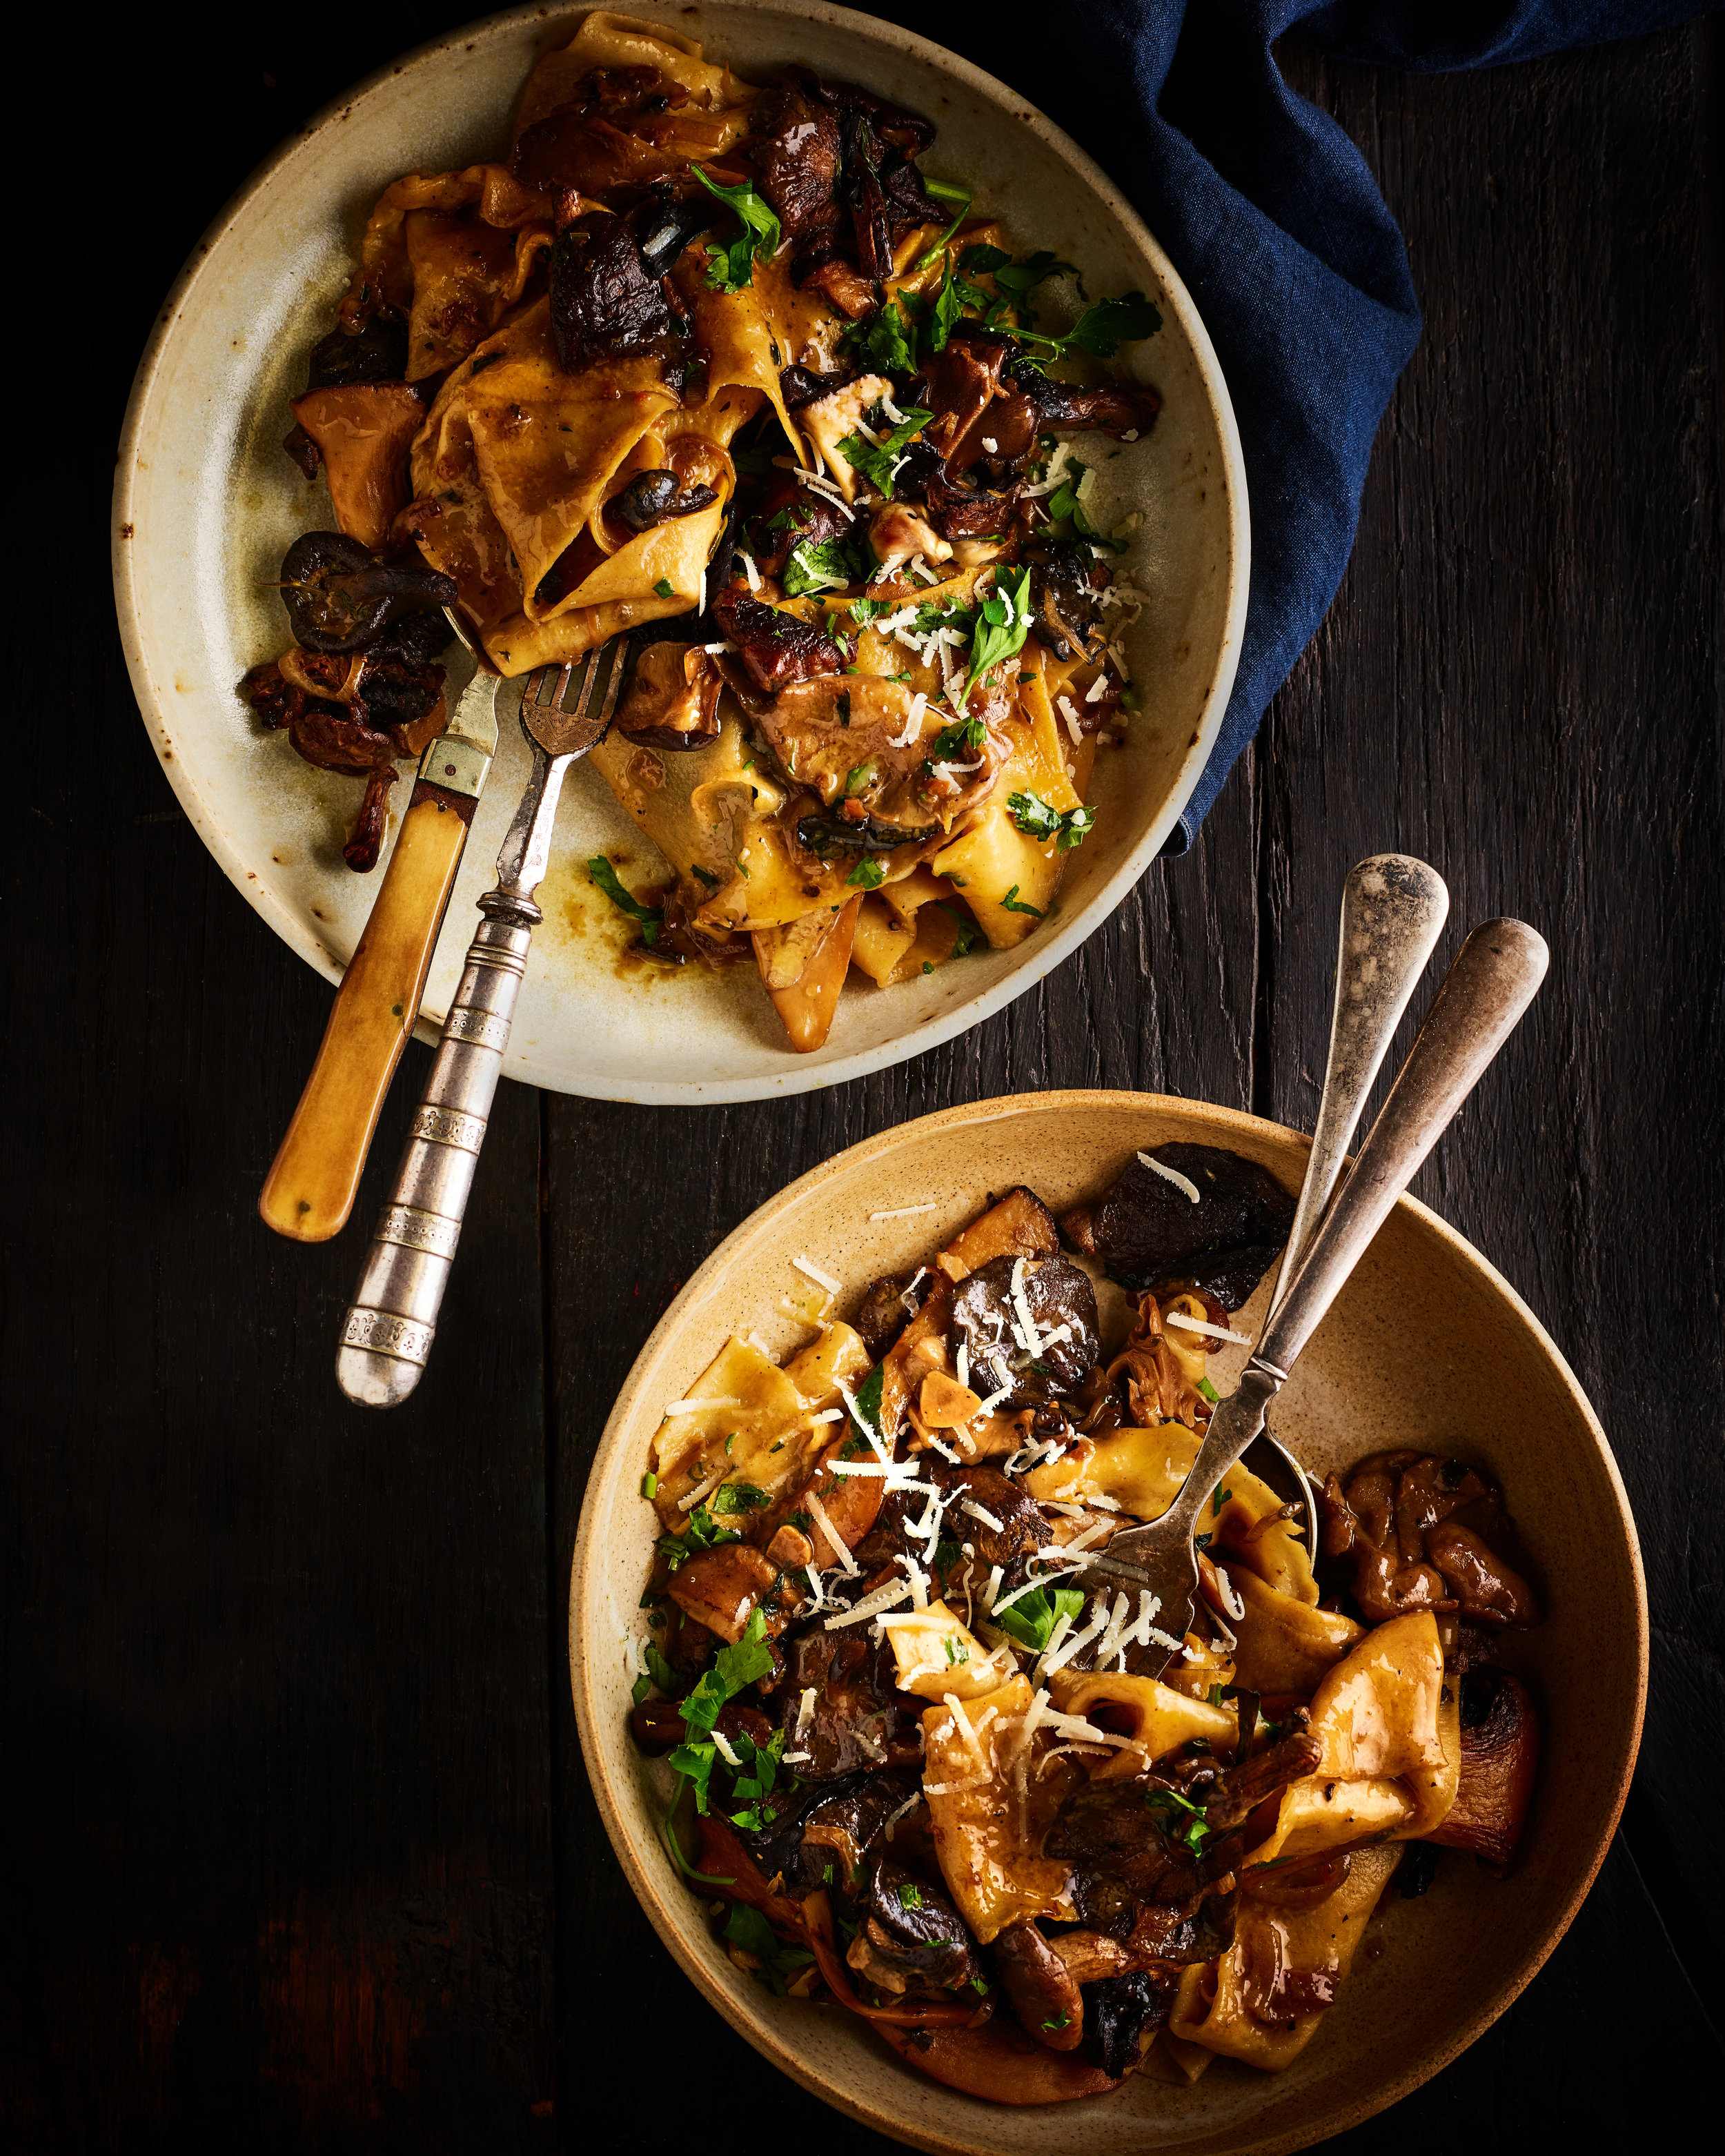 WILD MUSHROOM RAGOUT WITH PAPPARDELLE   August-November. A pasta dish which screams autumn. Use hand picked wild mushrooms if you can get hold of them. You'll notice just how meaty and nutty they are.